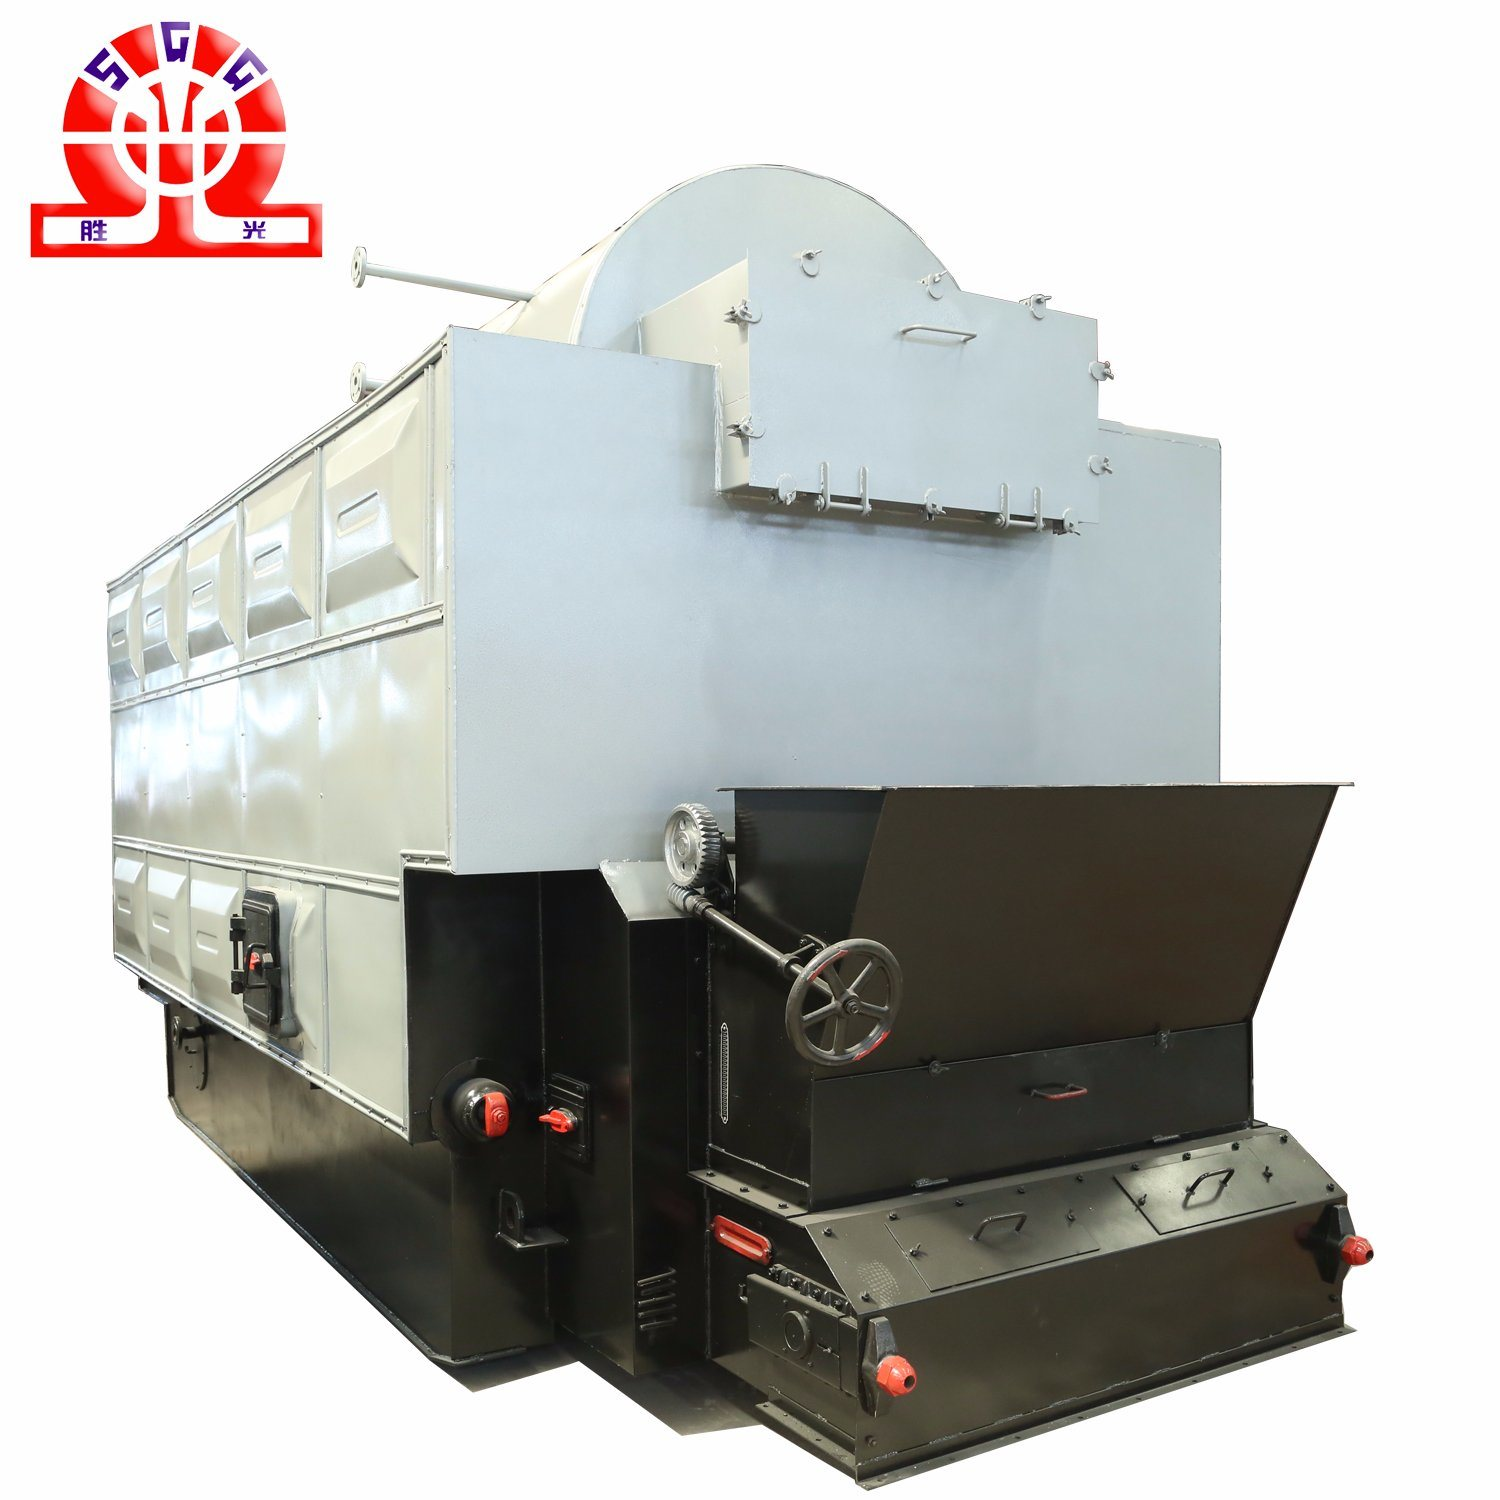 Wood Pellet Boiler >> China Fire And Water Tube Wood Pellet Boiler With Economizer China